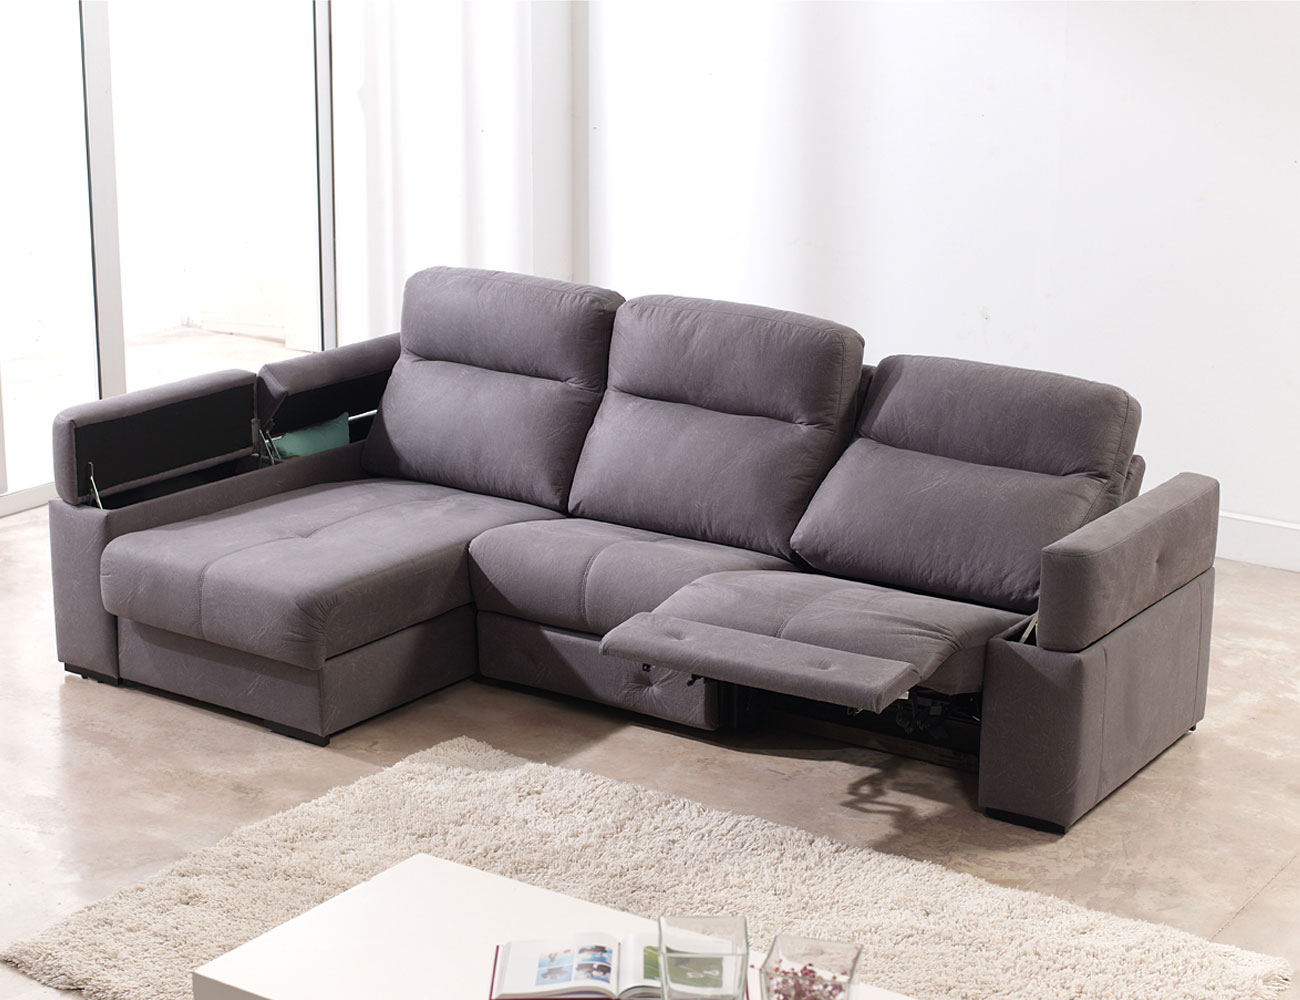 Sofa chaiselongue relax motor electrico 3 arcon 110